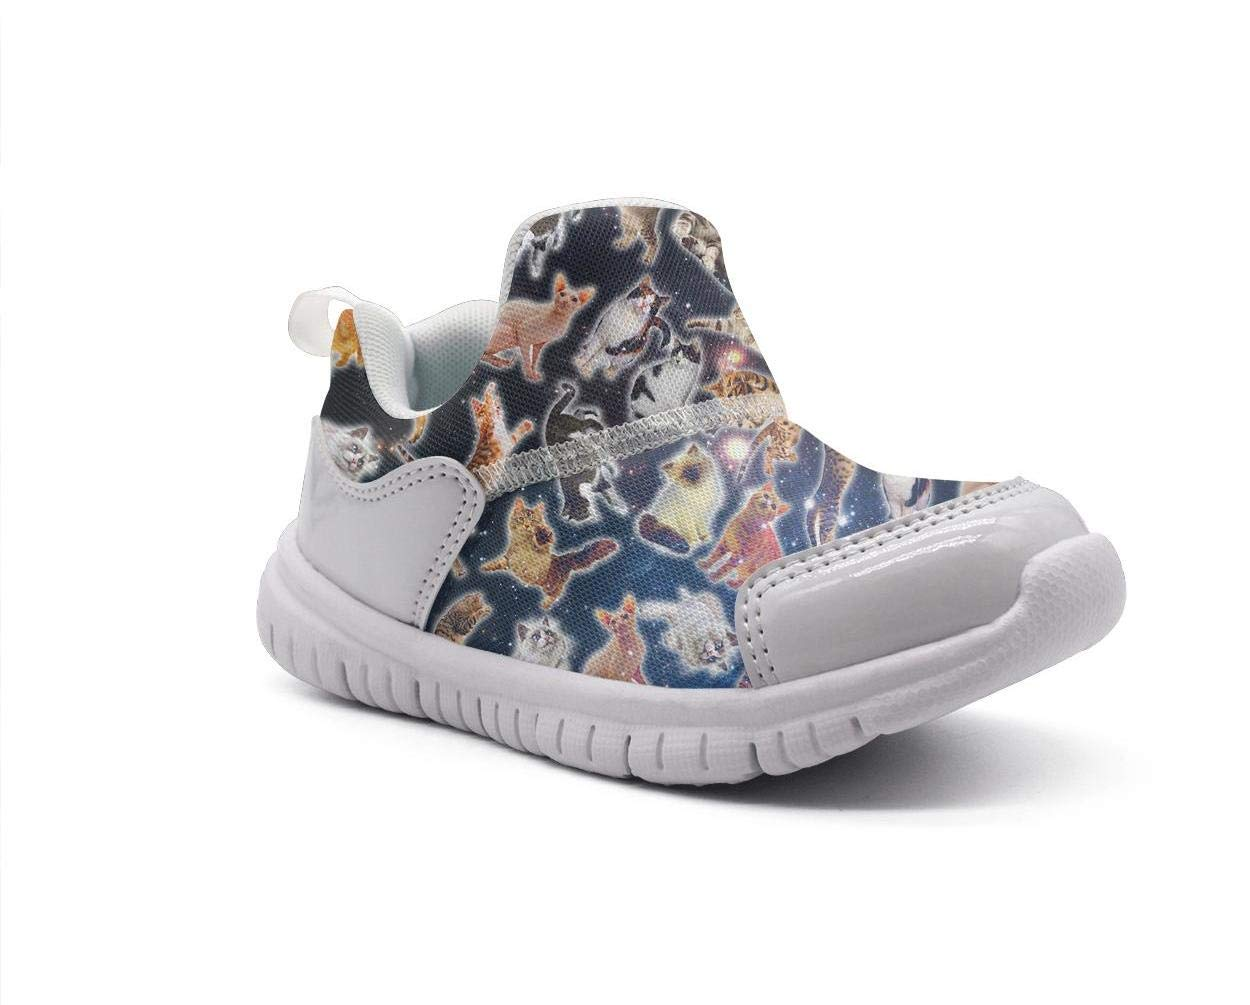 ONEYUAN Children Space Galaxy Cats 2 Kid Casual Lightweight Sport Shoes Sneakers Running Shoes